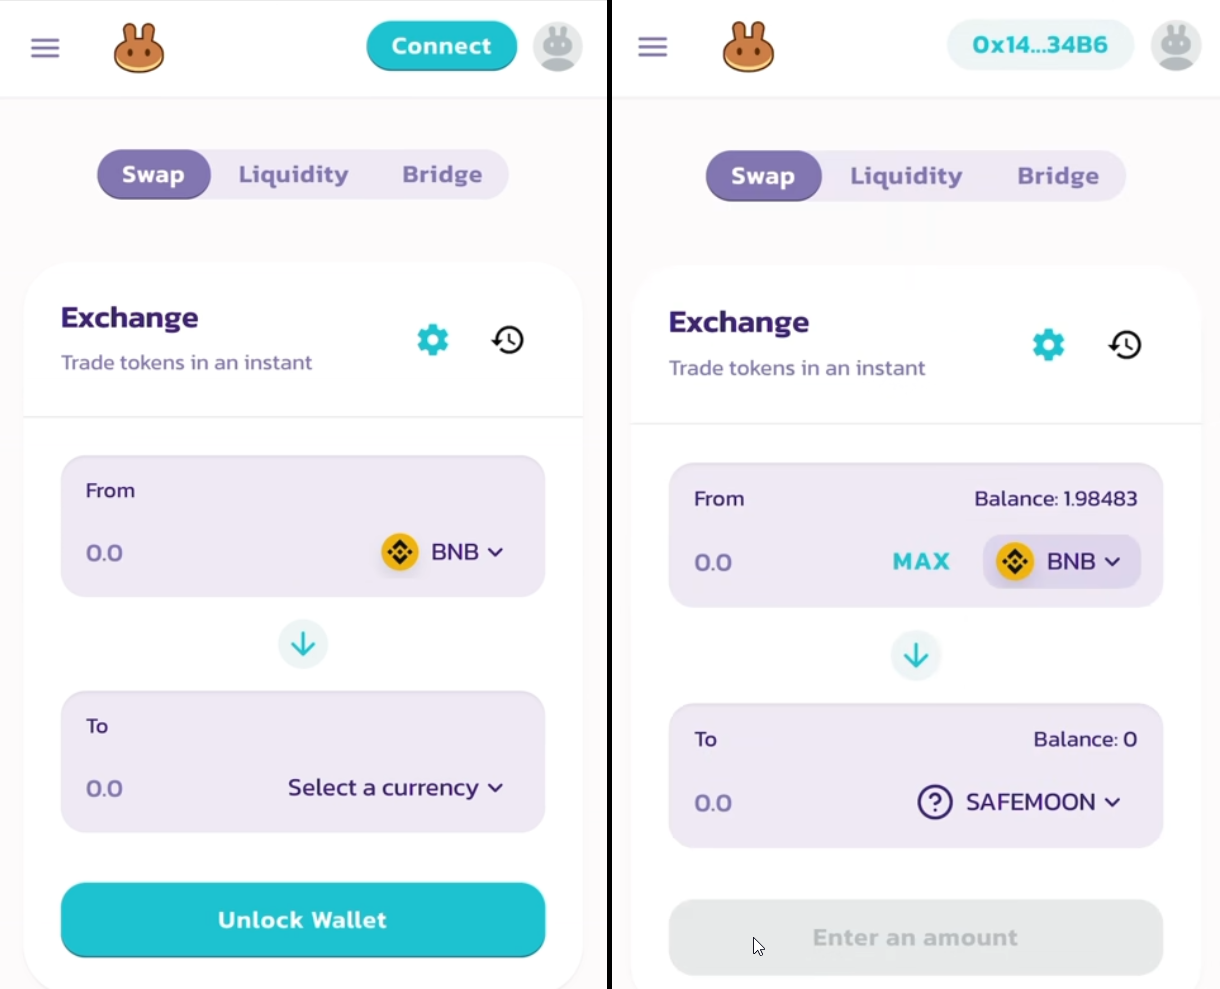 Step 5. Swap BNB Smart Chain for SAFEMOON